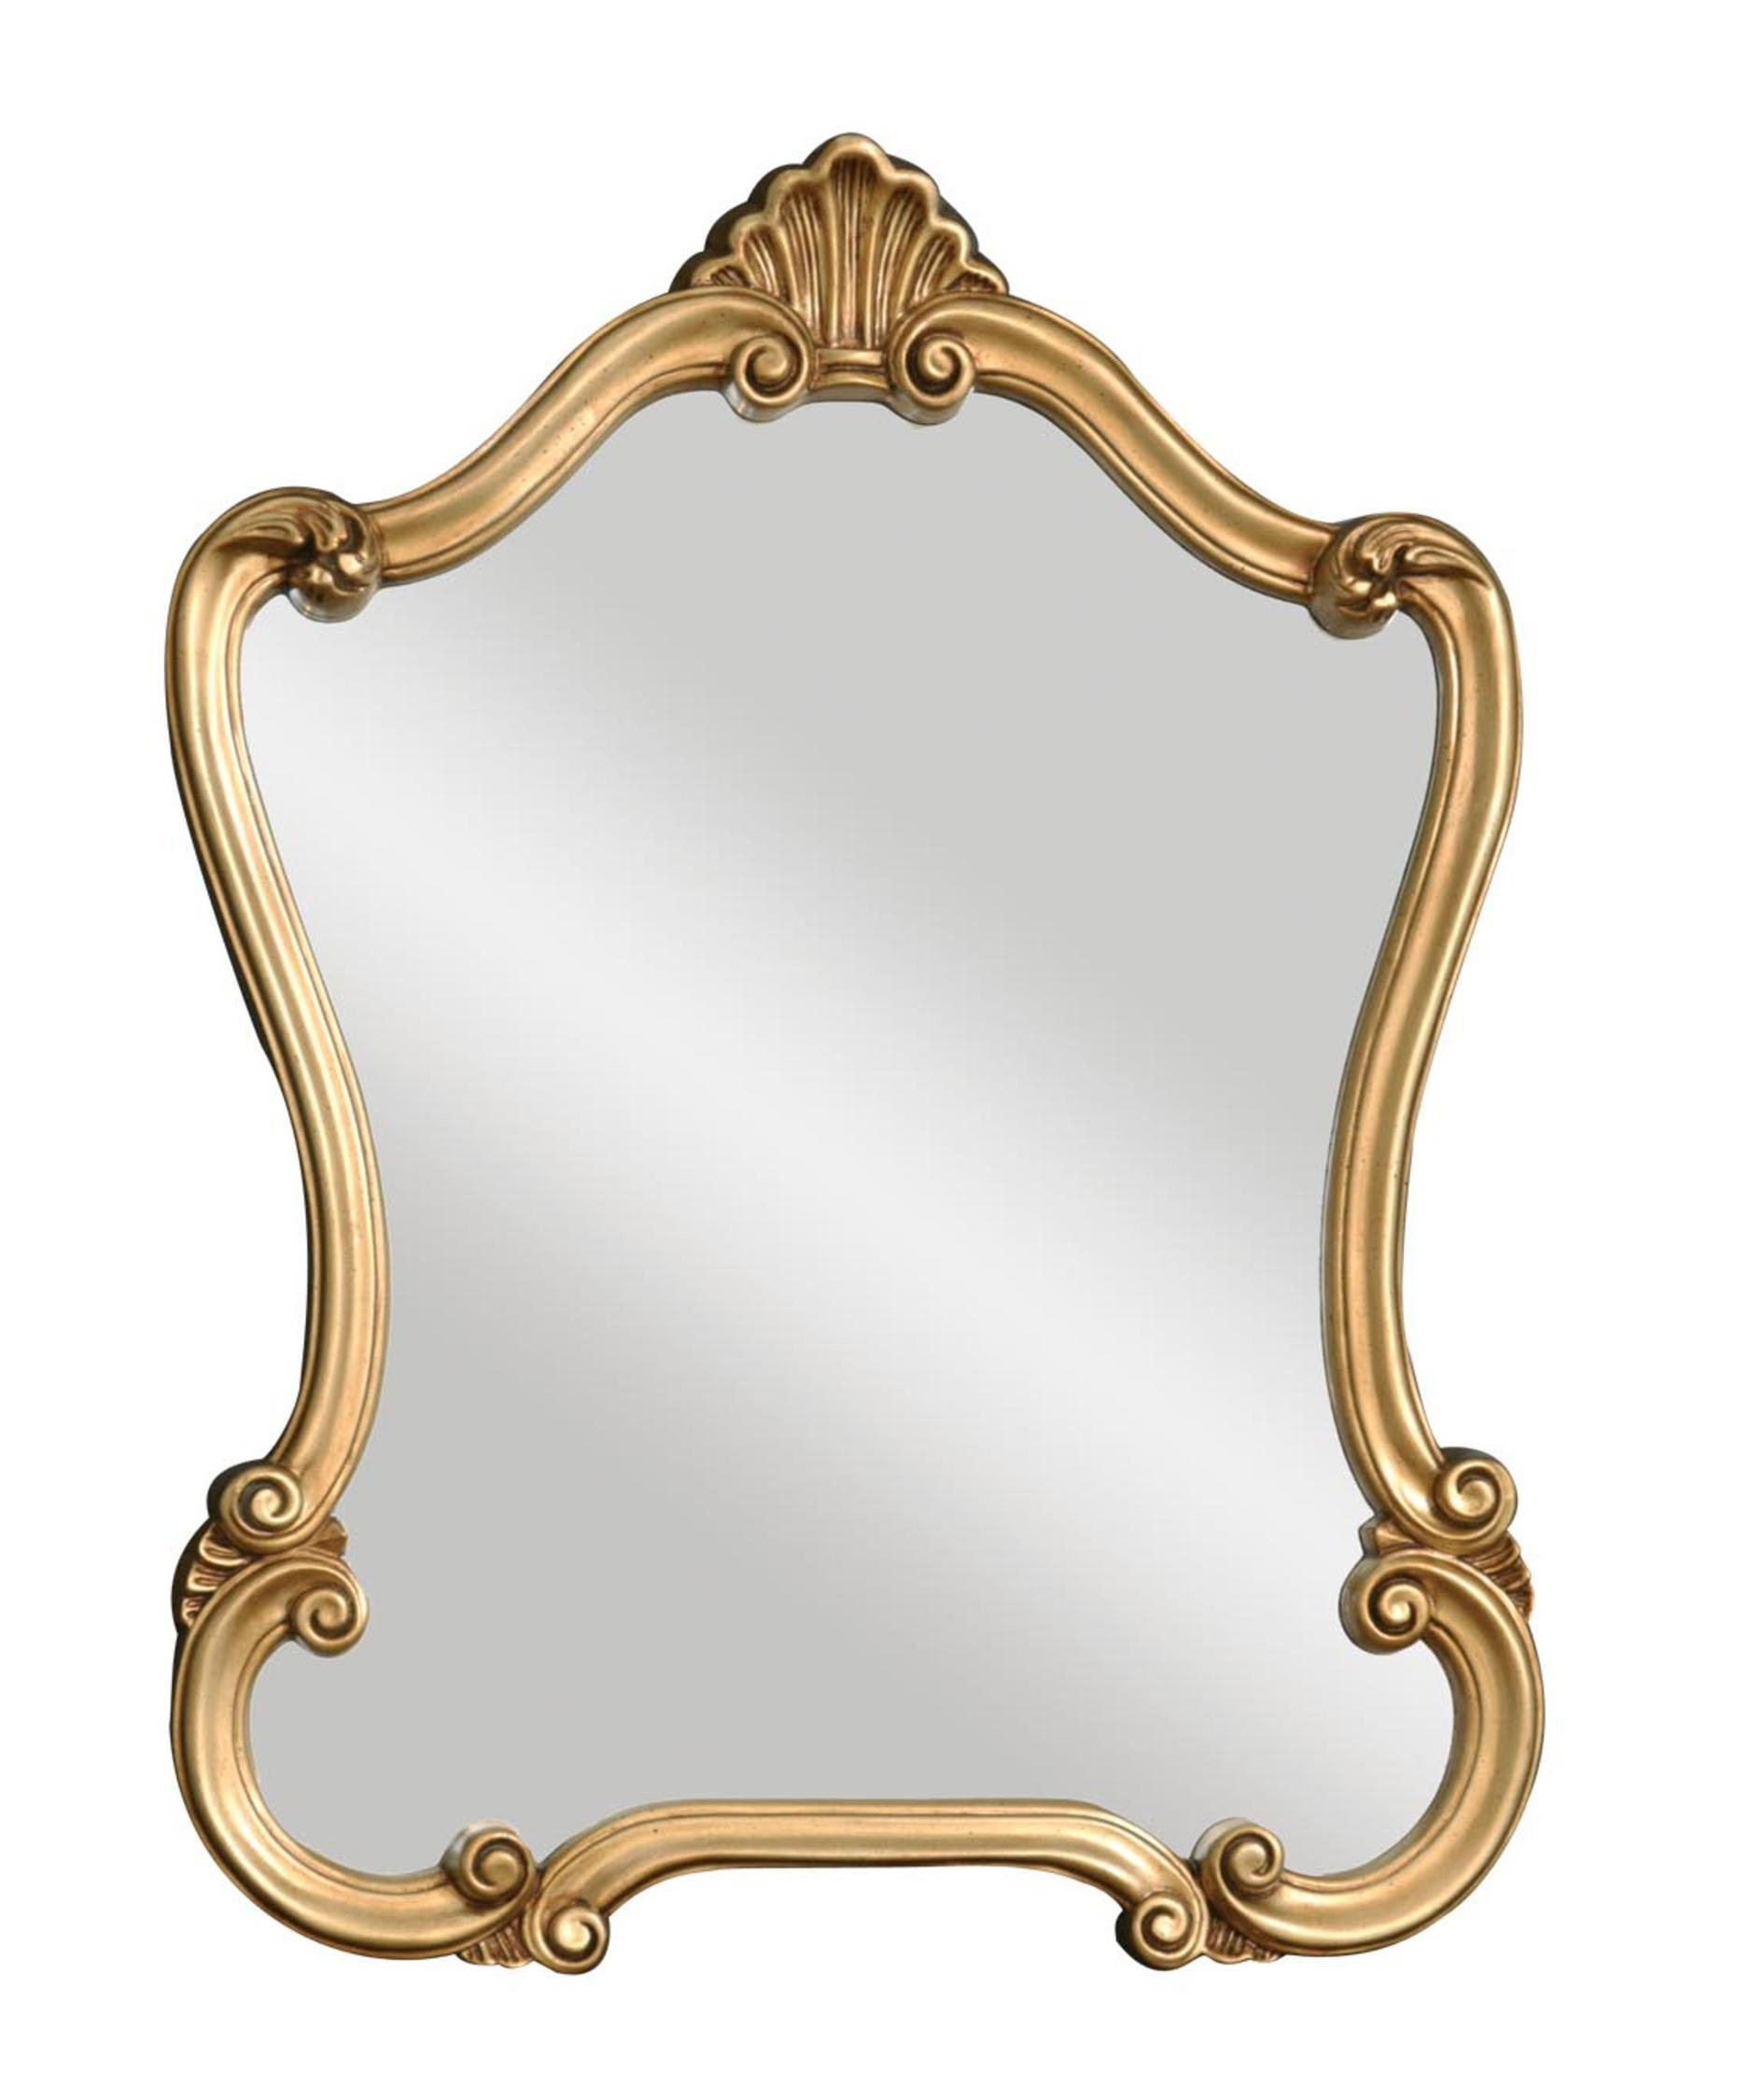 Uttermost 08340 Walton Hall Gold Wall Mirror | Capitol Lighting 1 For Gold Wall Mirrors (Image 18 of 20)